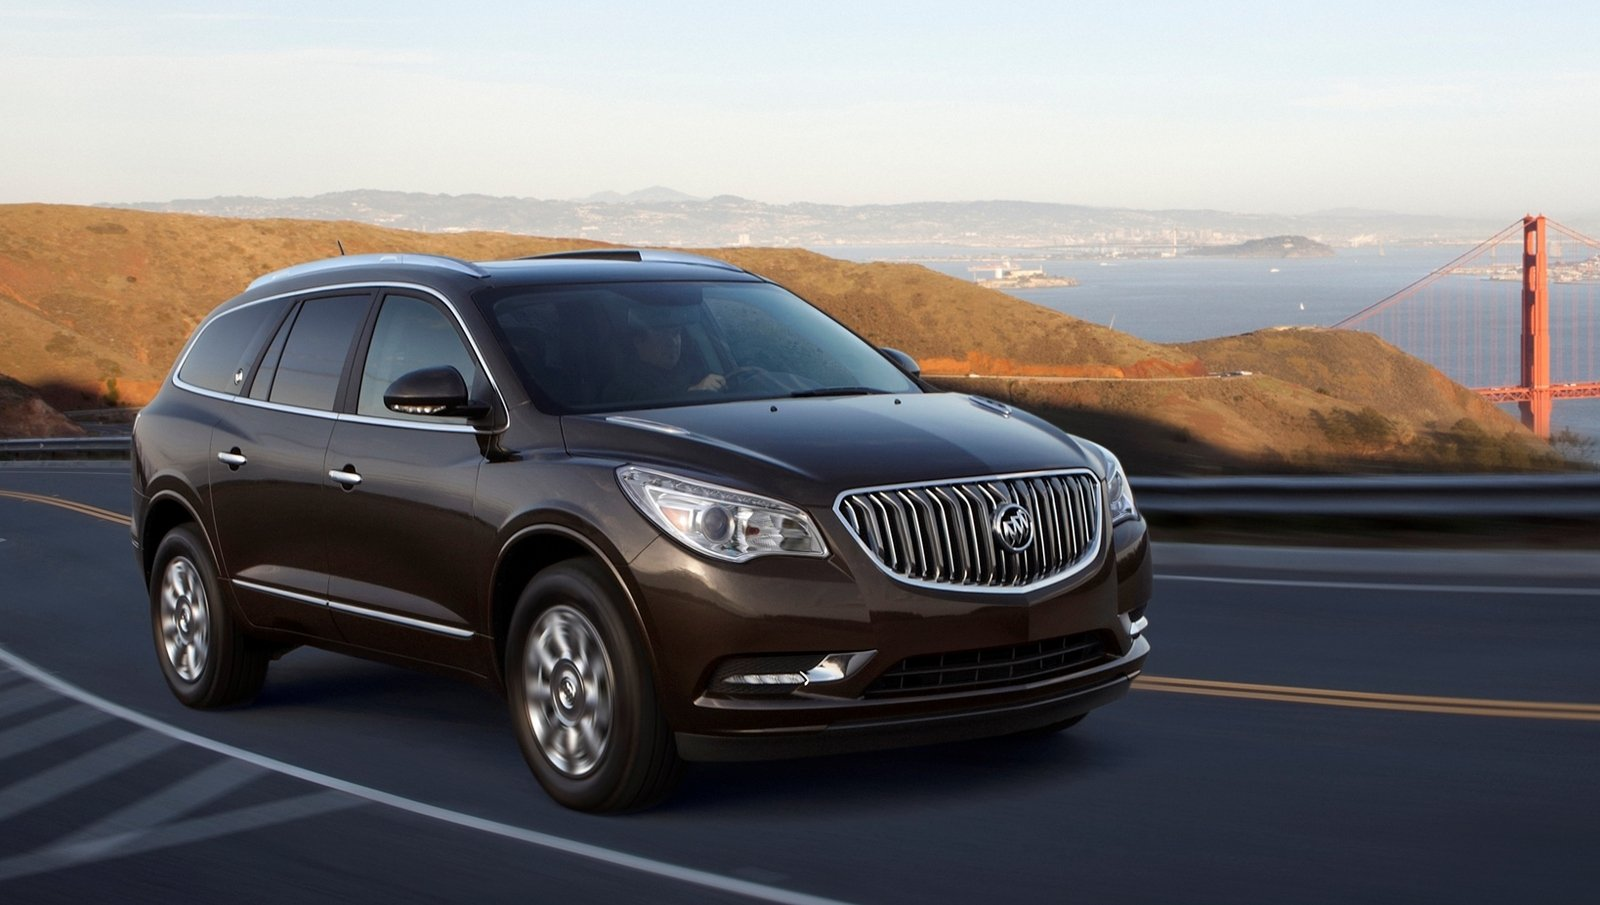 2014 buick enclave picture 515003 car review top speed. Black Bedroom Furniture Sets. Home Design Ideas